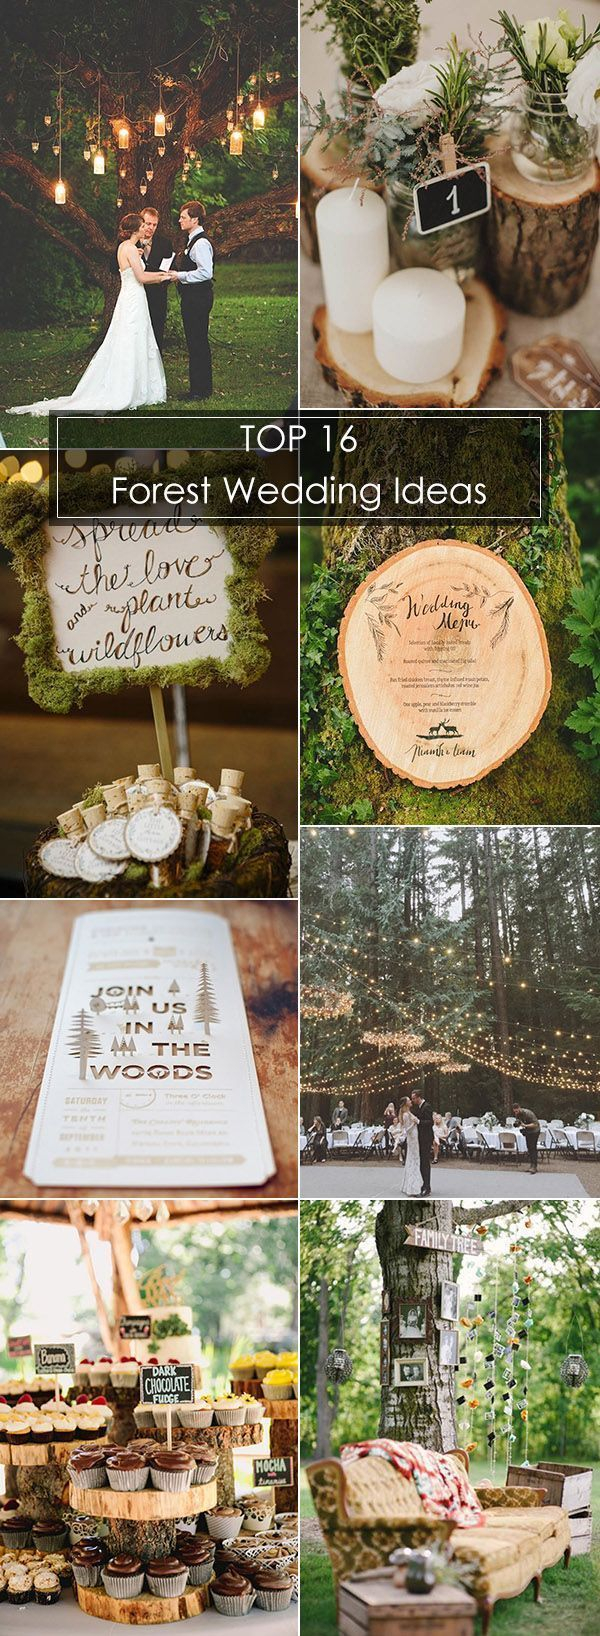 Have you ever thought about a wedding in the forest? It's very IN now and one of the biggest wedding trends for the year 2017. Imaging a forest ceremony with thousands of paper cranes dancing in the breeze above, gorgeous lights hang from the trees, charming nature beauty all round. See the woodland inspiration here:	http://ohbestdayever.com/2016/10/18/16-inspired-ideas-whimsical-forest-wedding/